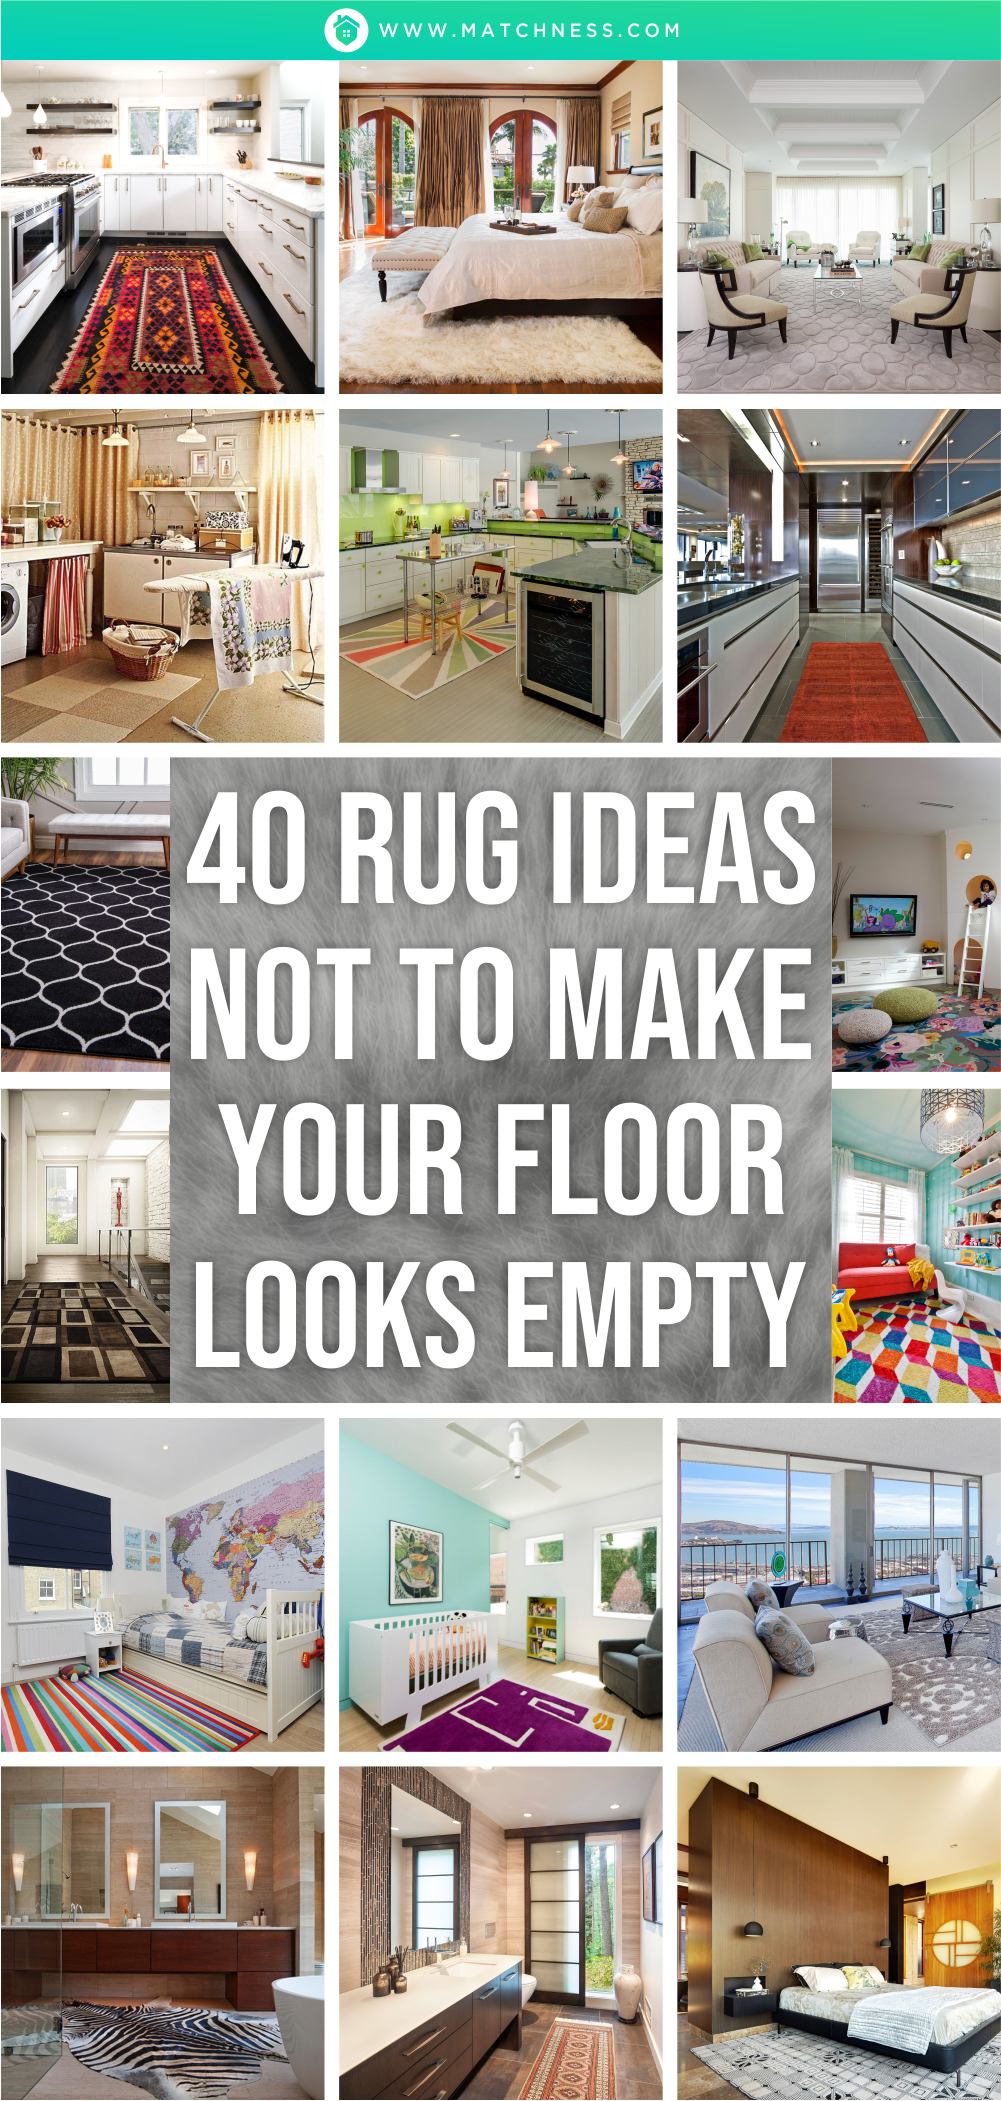 40-rug-ideas-not-to-make-your-floor-looks-empty1